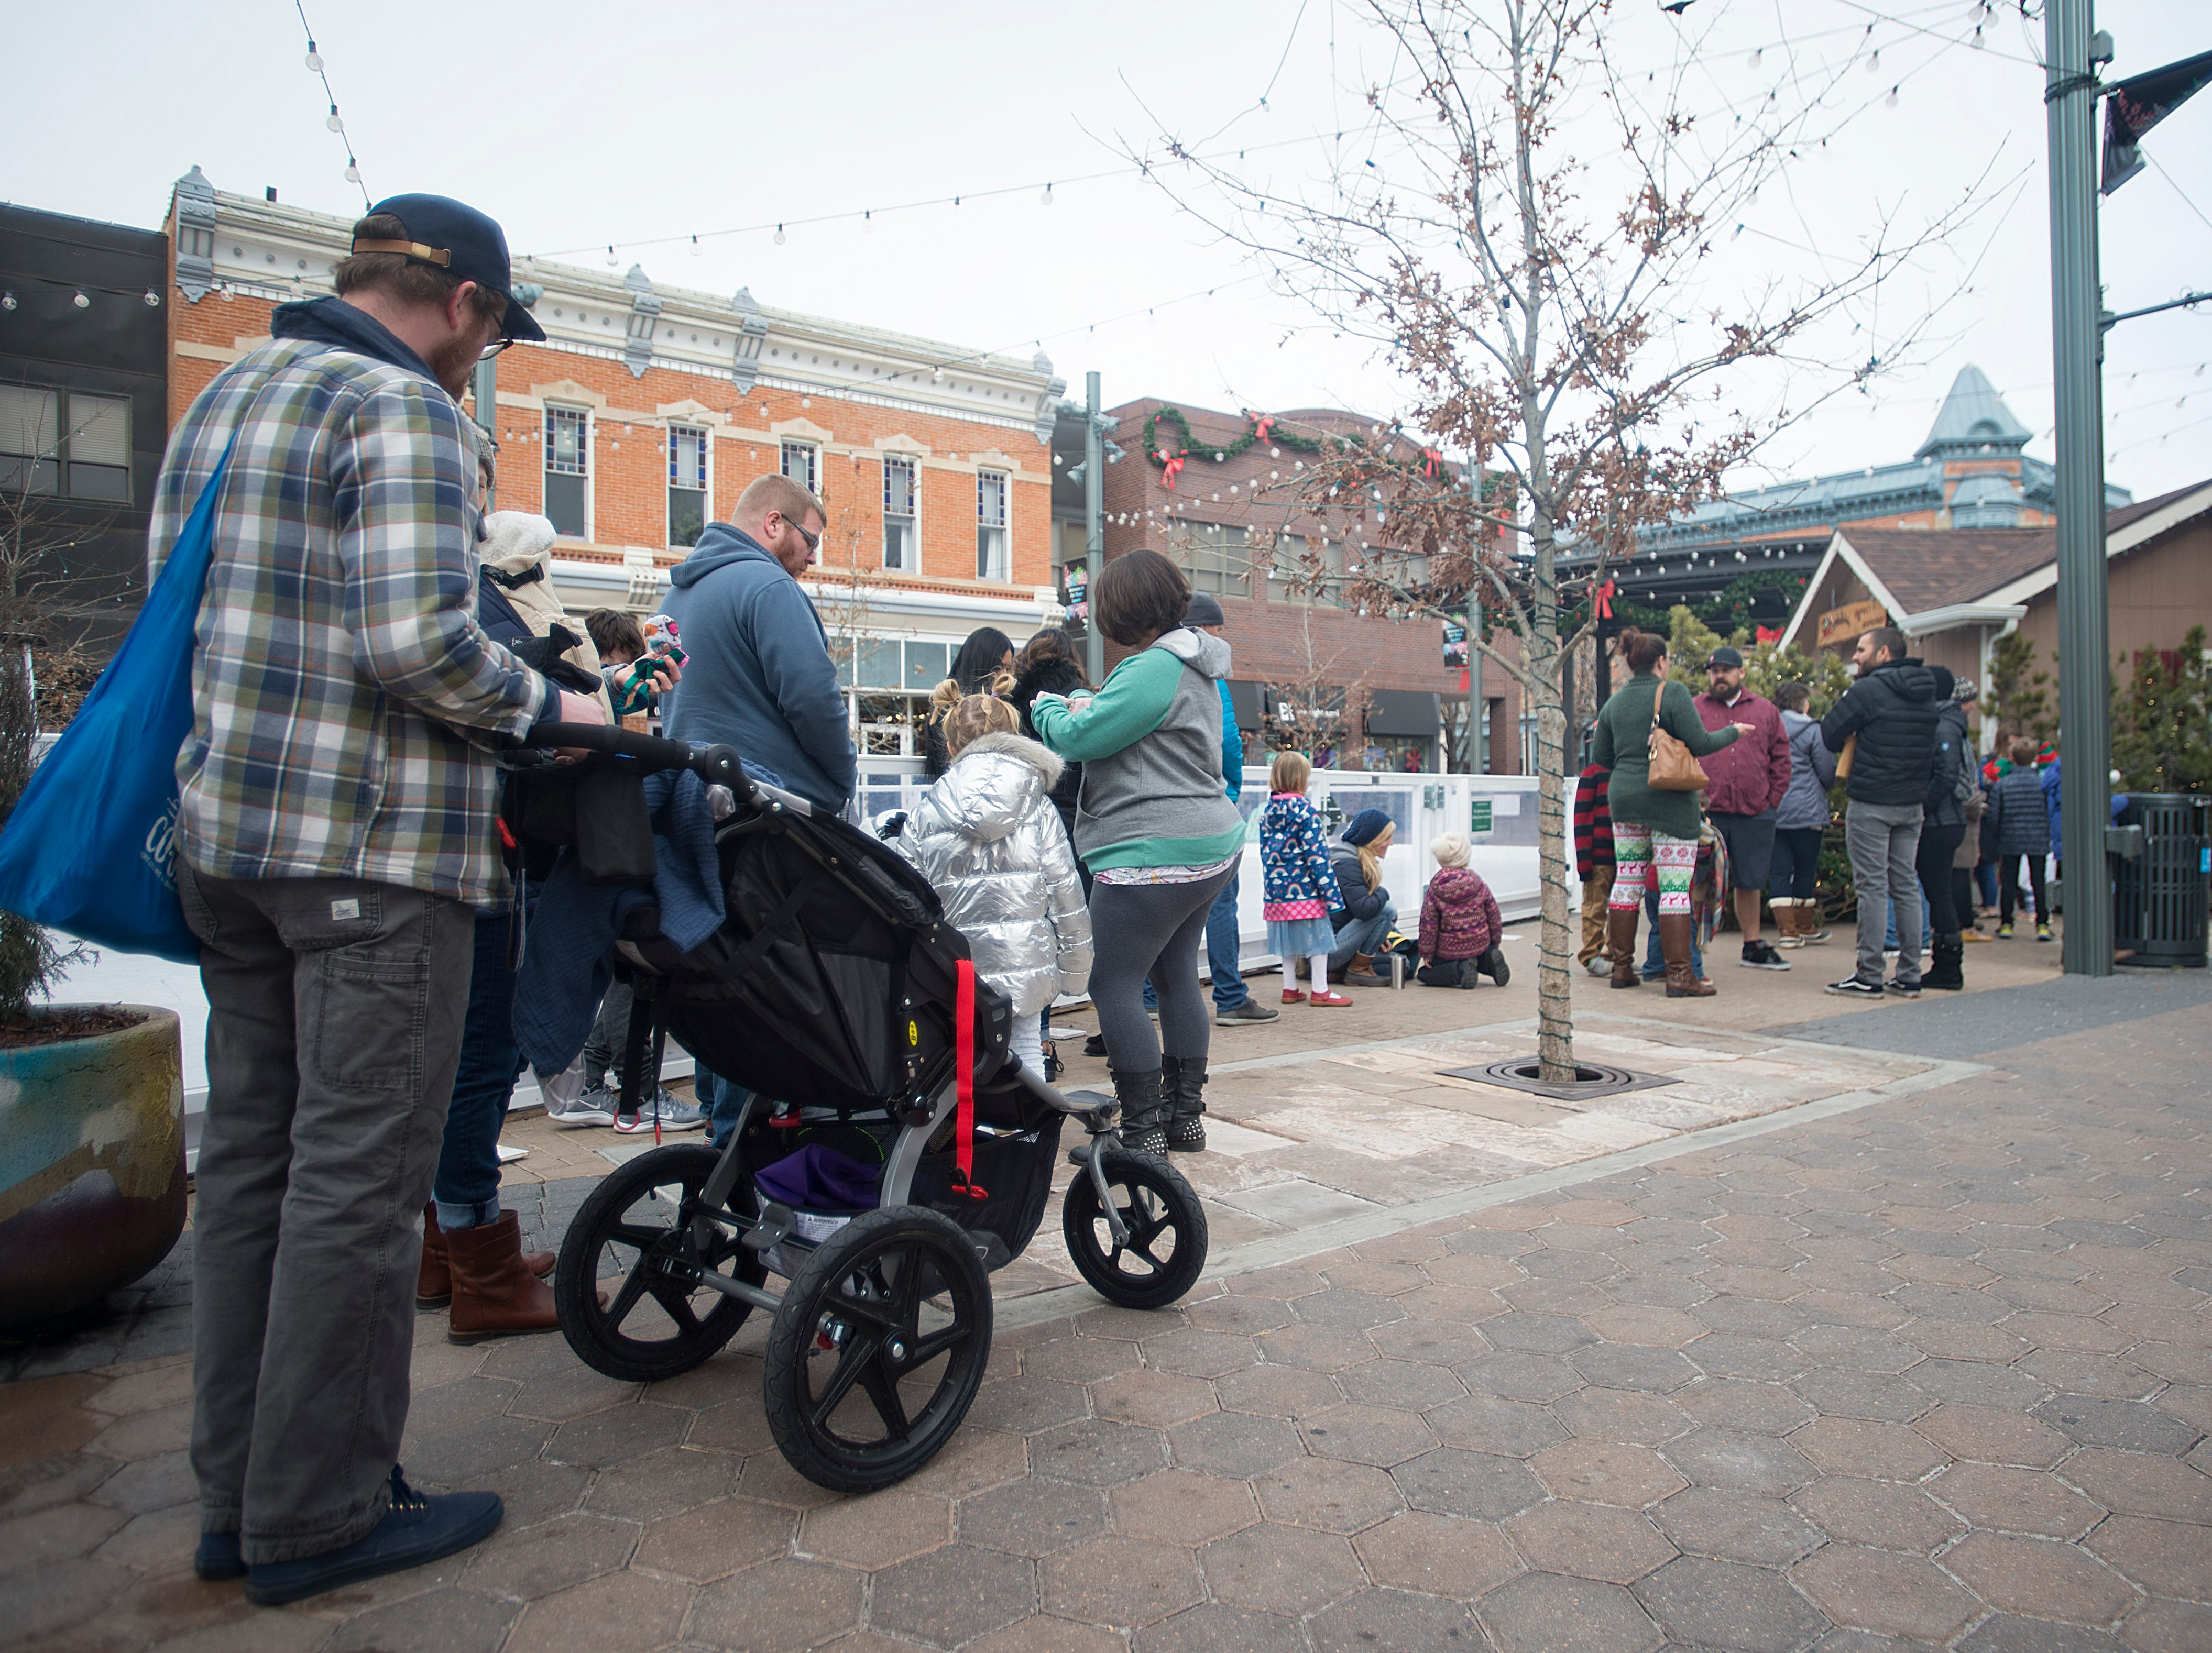 People line up to visit Santa Claus in Old Town Square on Monday, December 24, 2018.